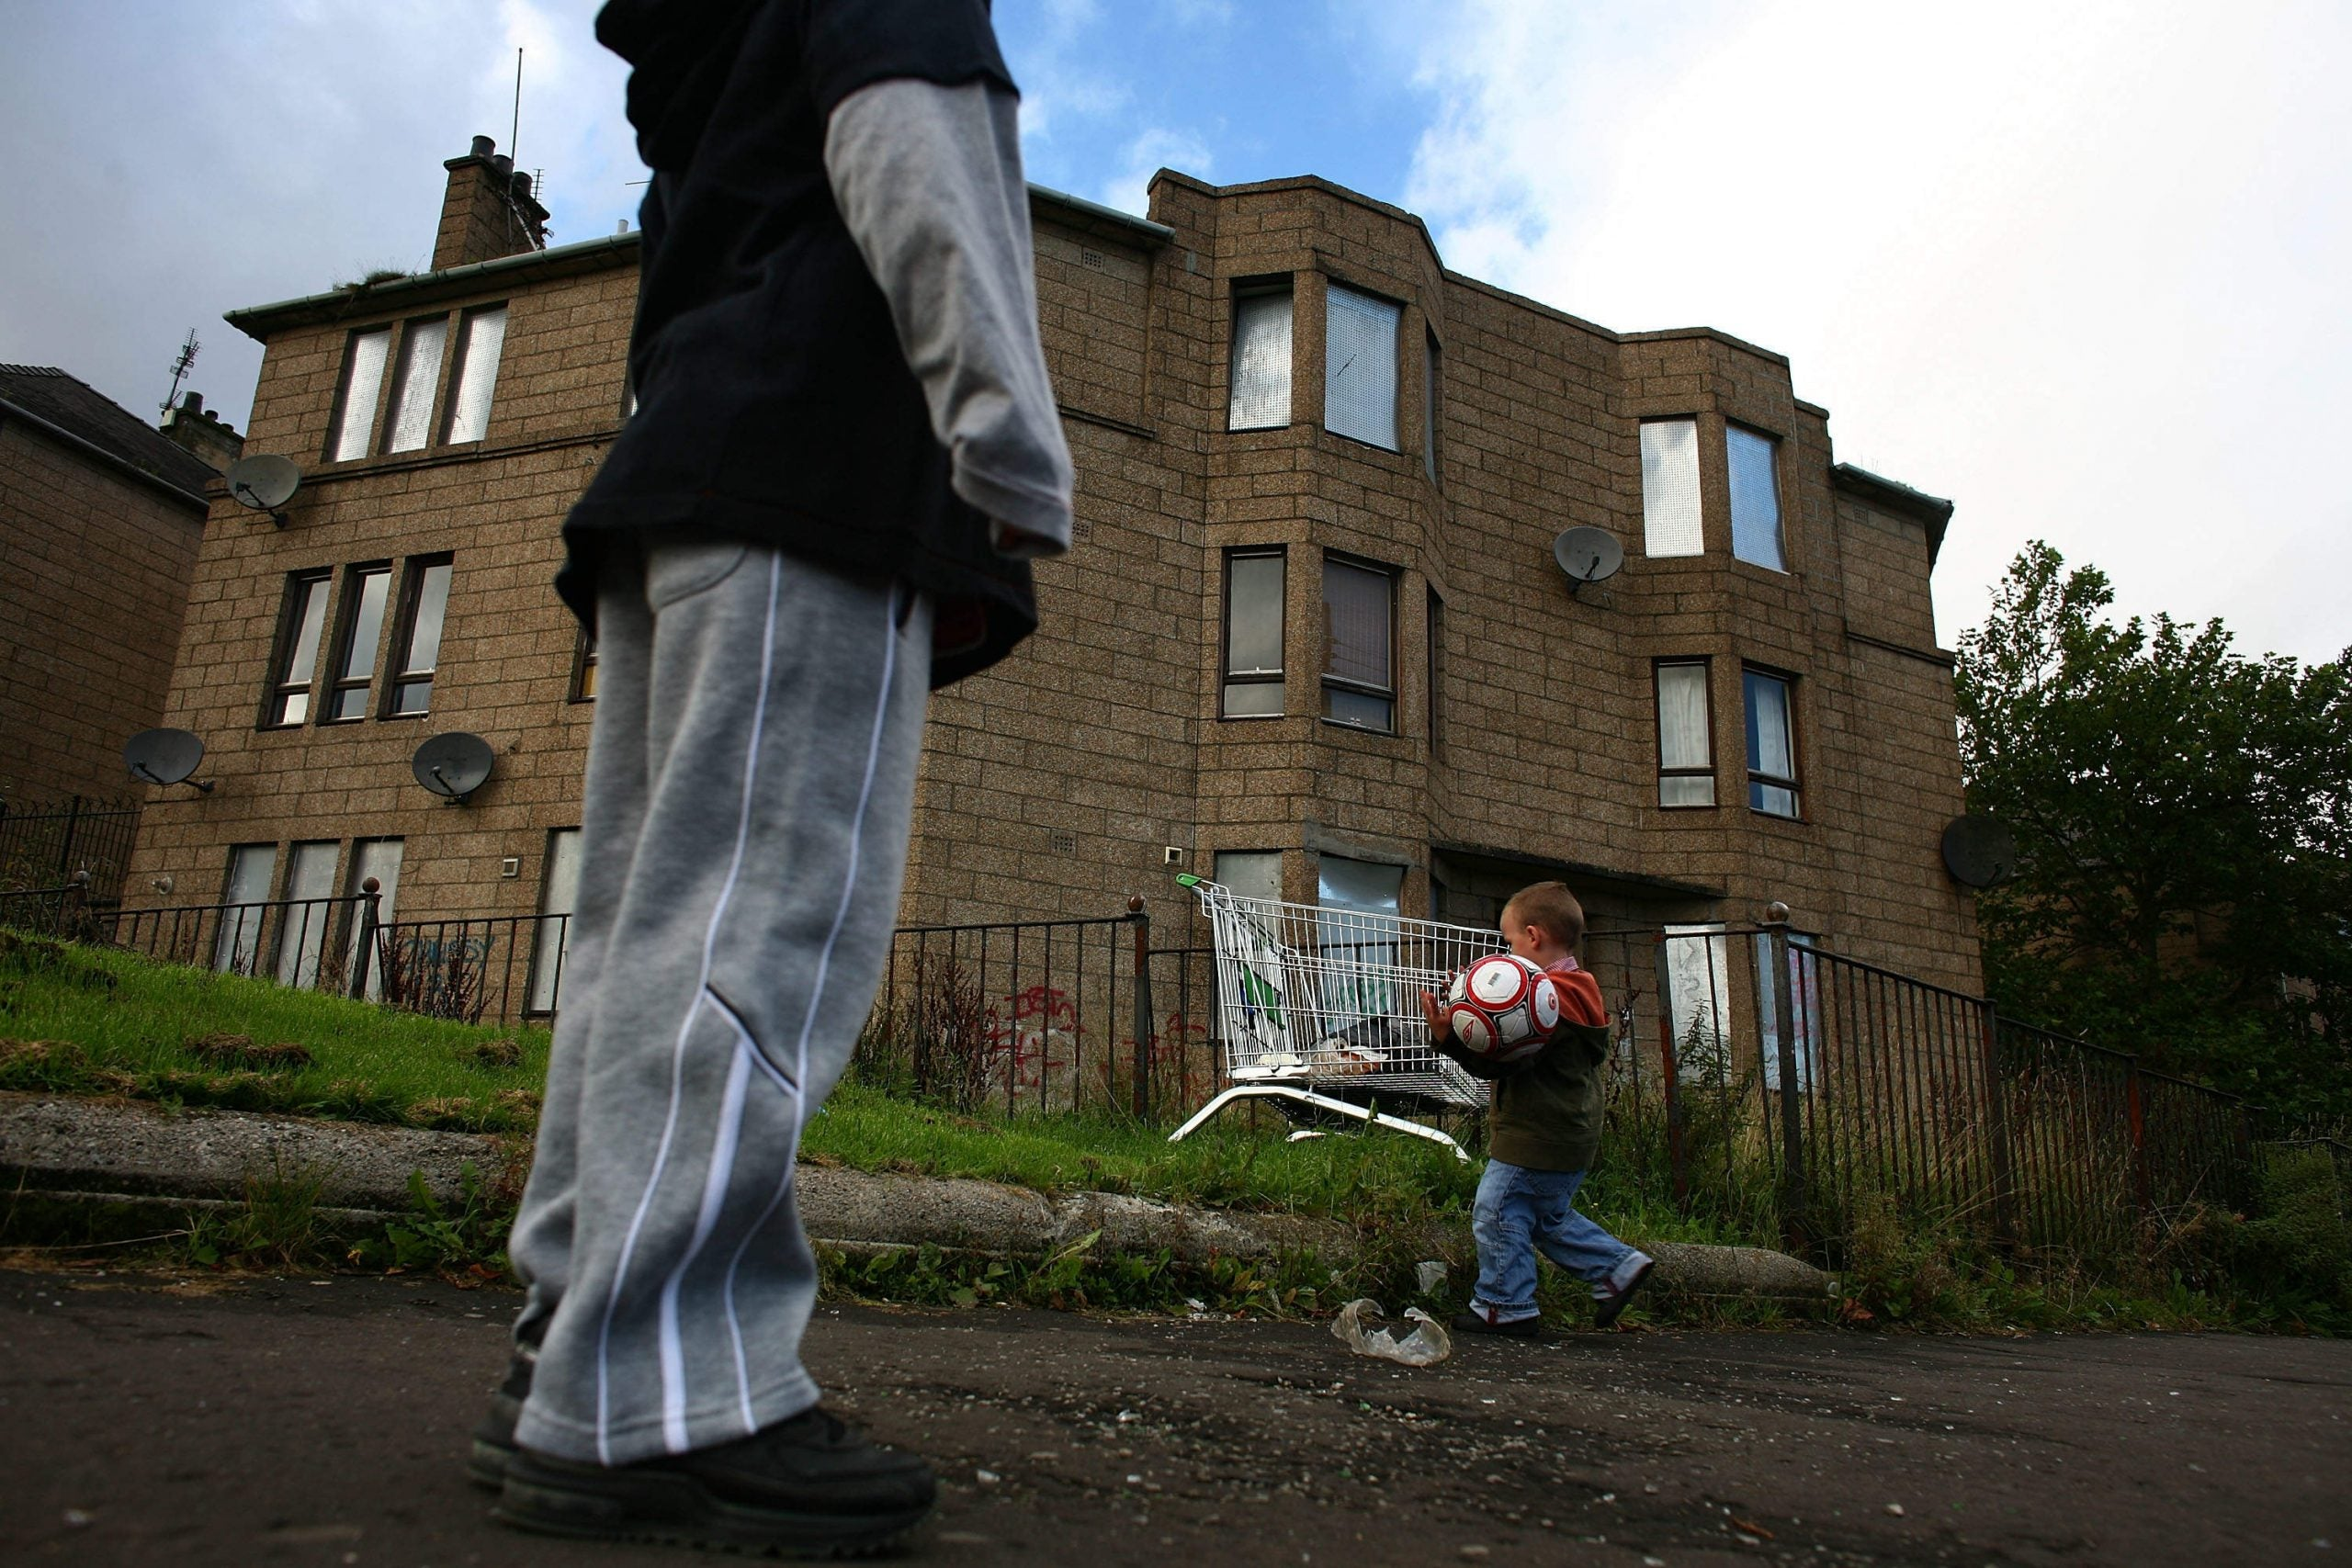 The evidence is clear – Universal Credit is pushing children into poverty